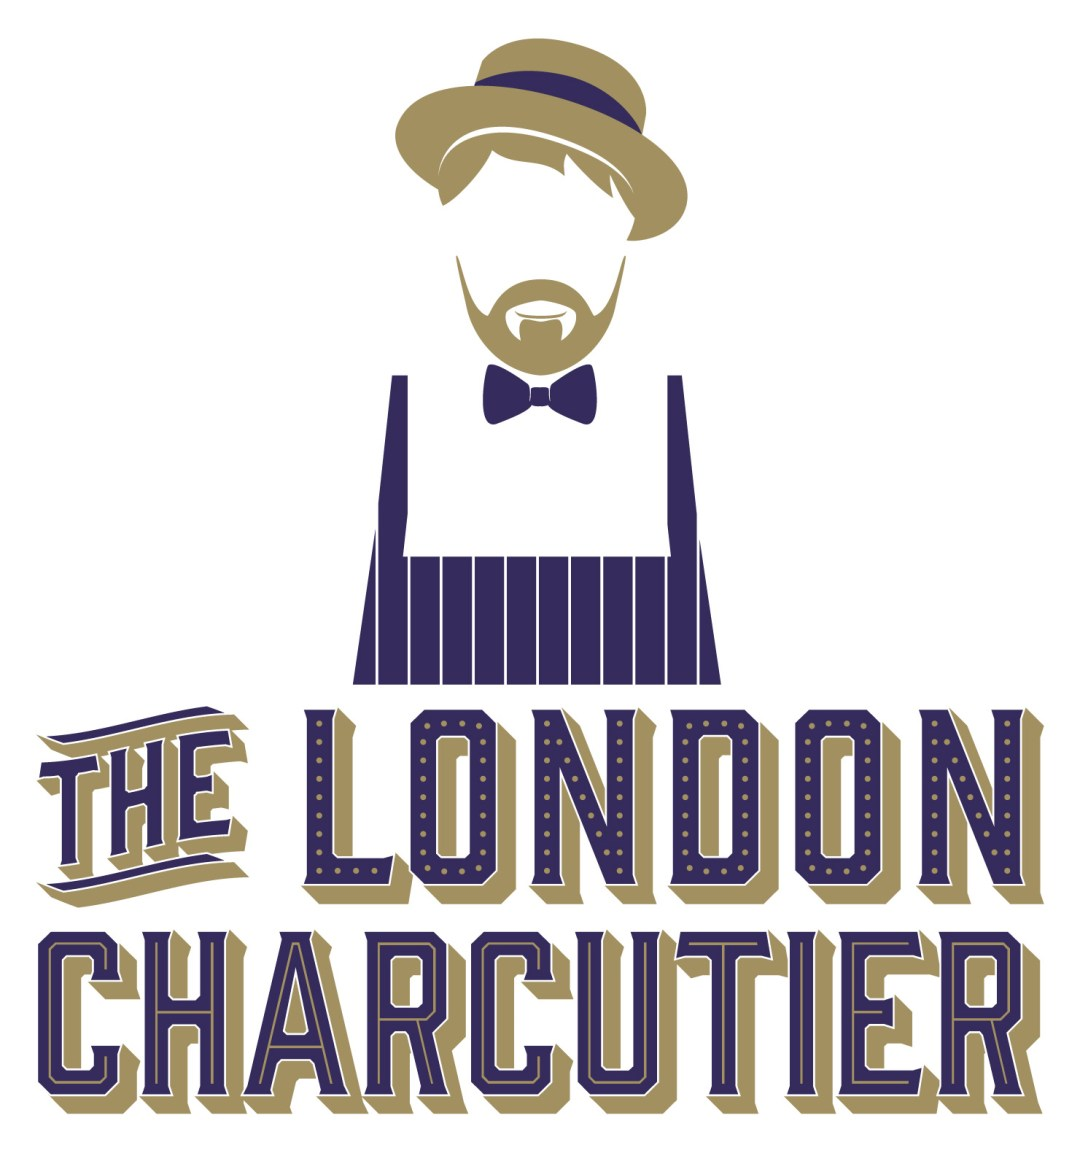 THE LONDON CHARCUTIER LOGO Designed By Good People